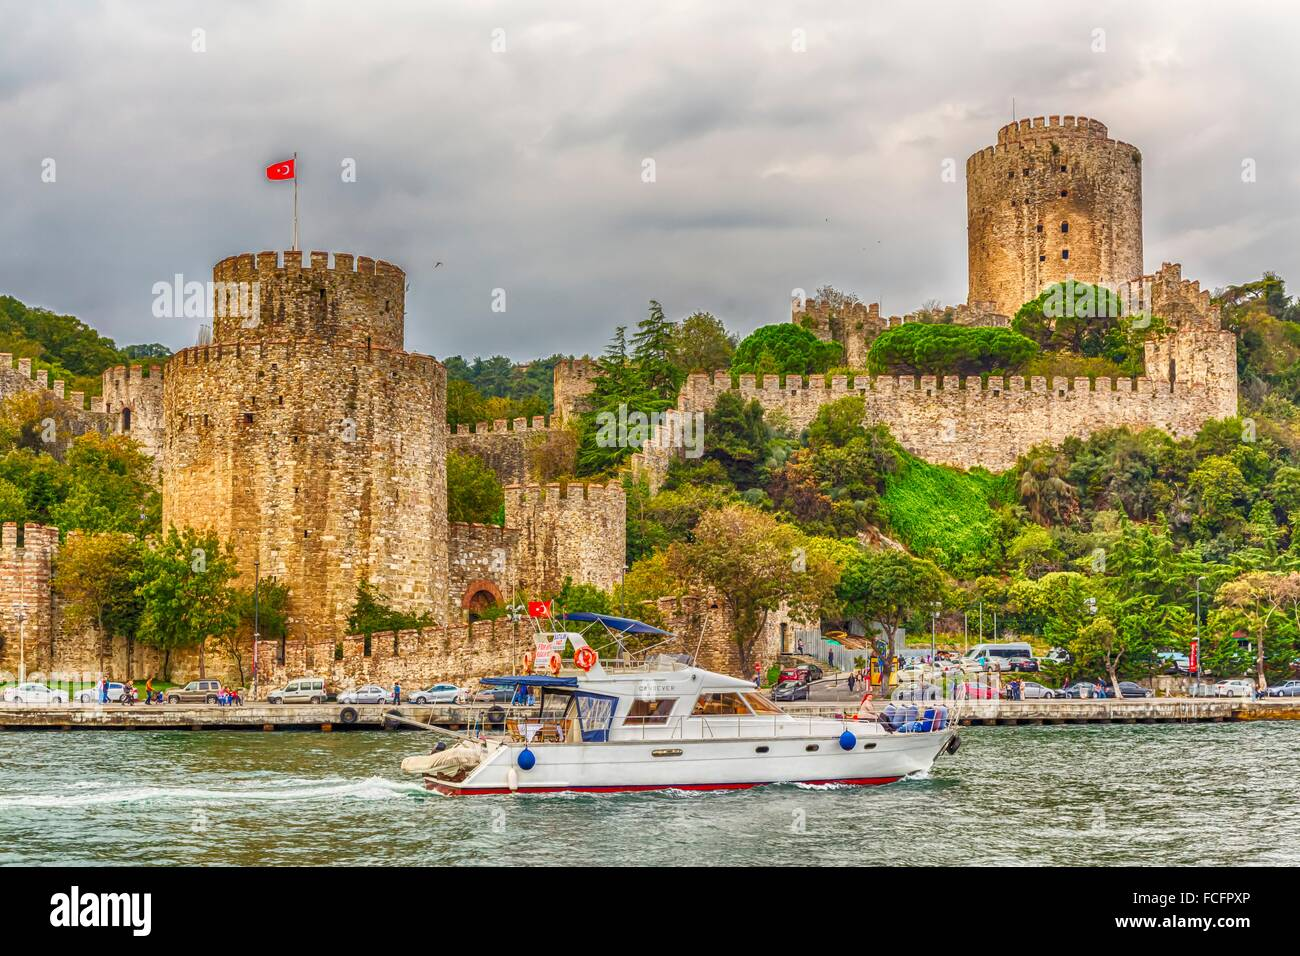 The Rumelihisar Castle along the Bosphorus near Istanbul, Turkey. Stock Photo